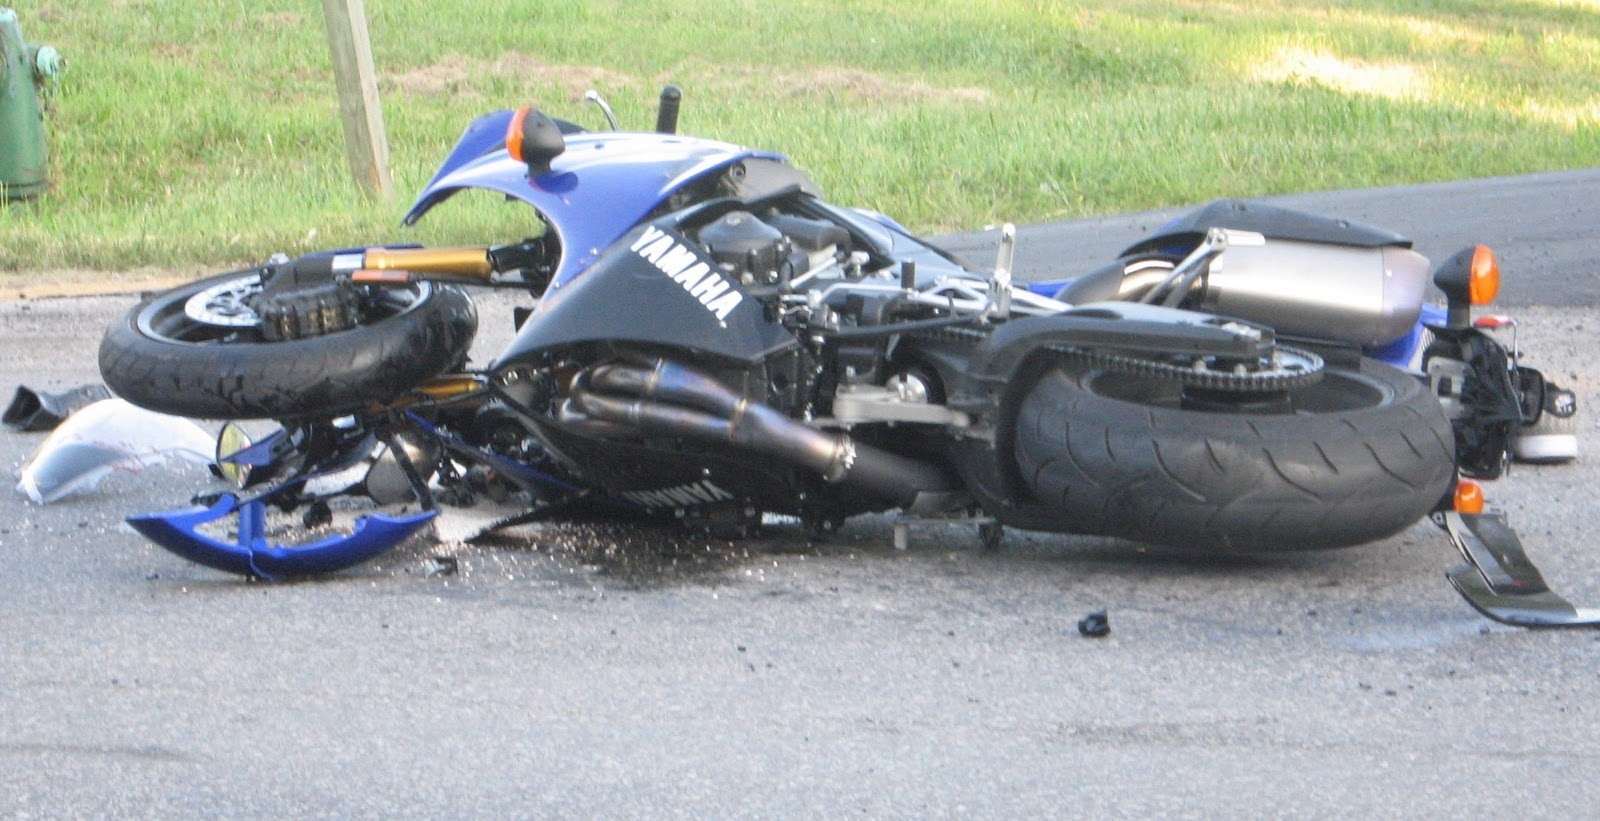 Involved in a Motorcycle Accident? What to Do After the Crash